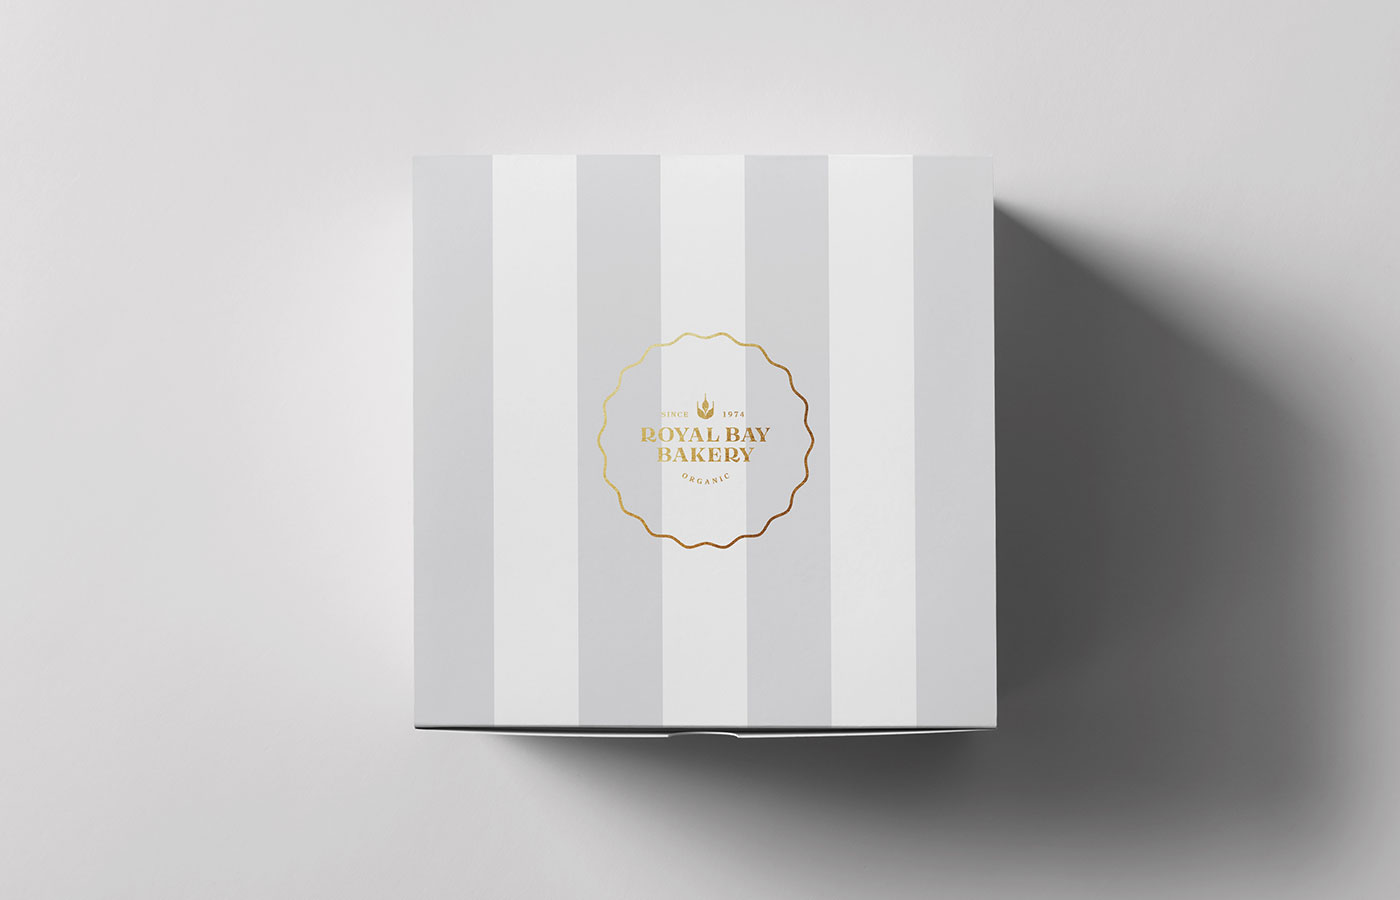 covetdesign_logo-design_branding_package-design_graphic-design_vancouver_work_wide_rbb-box-top